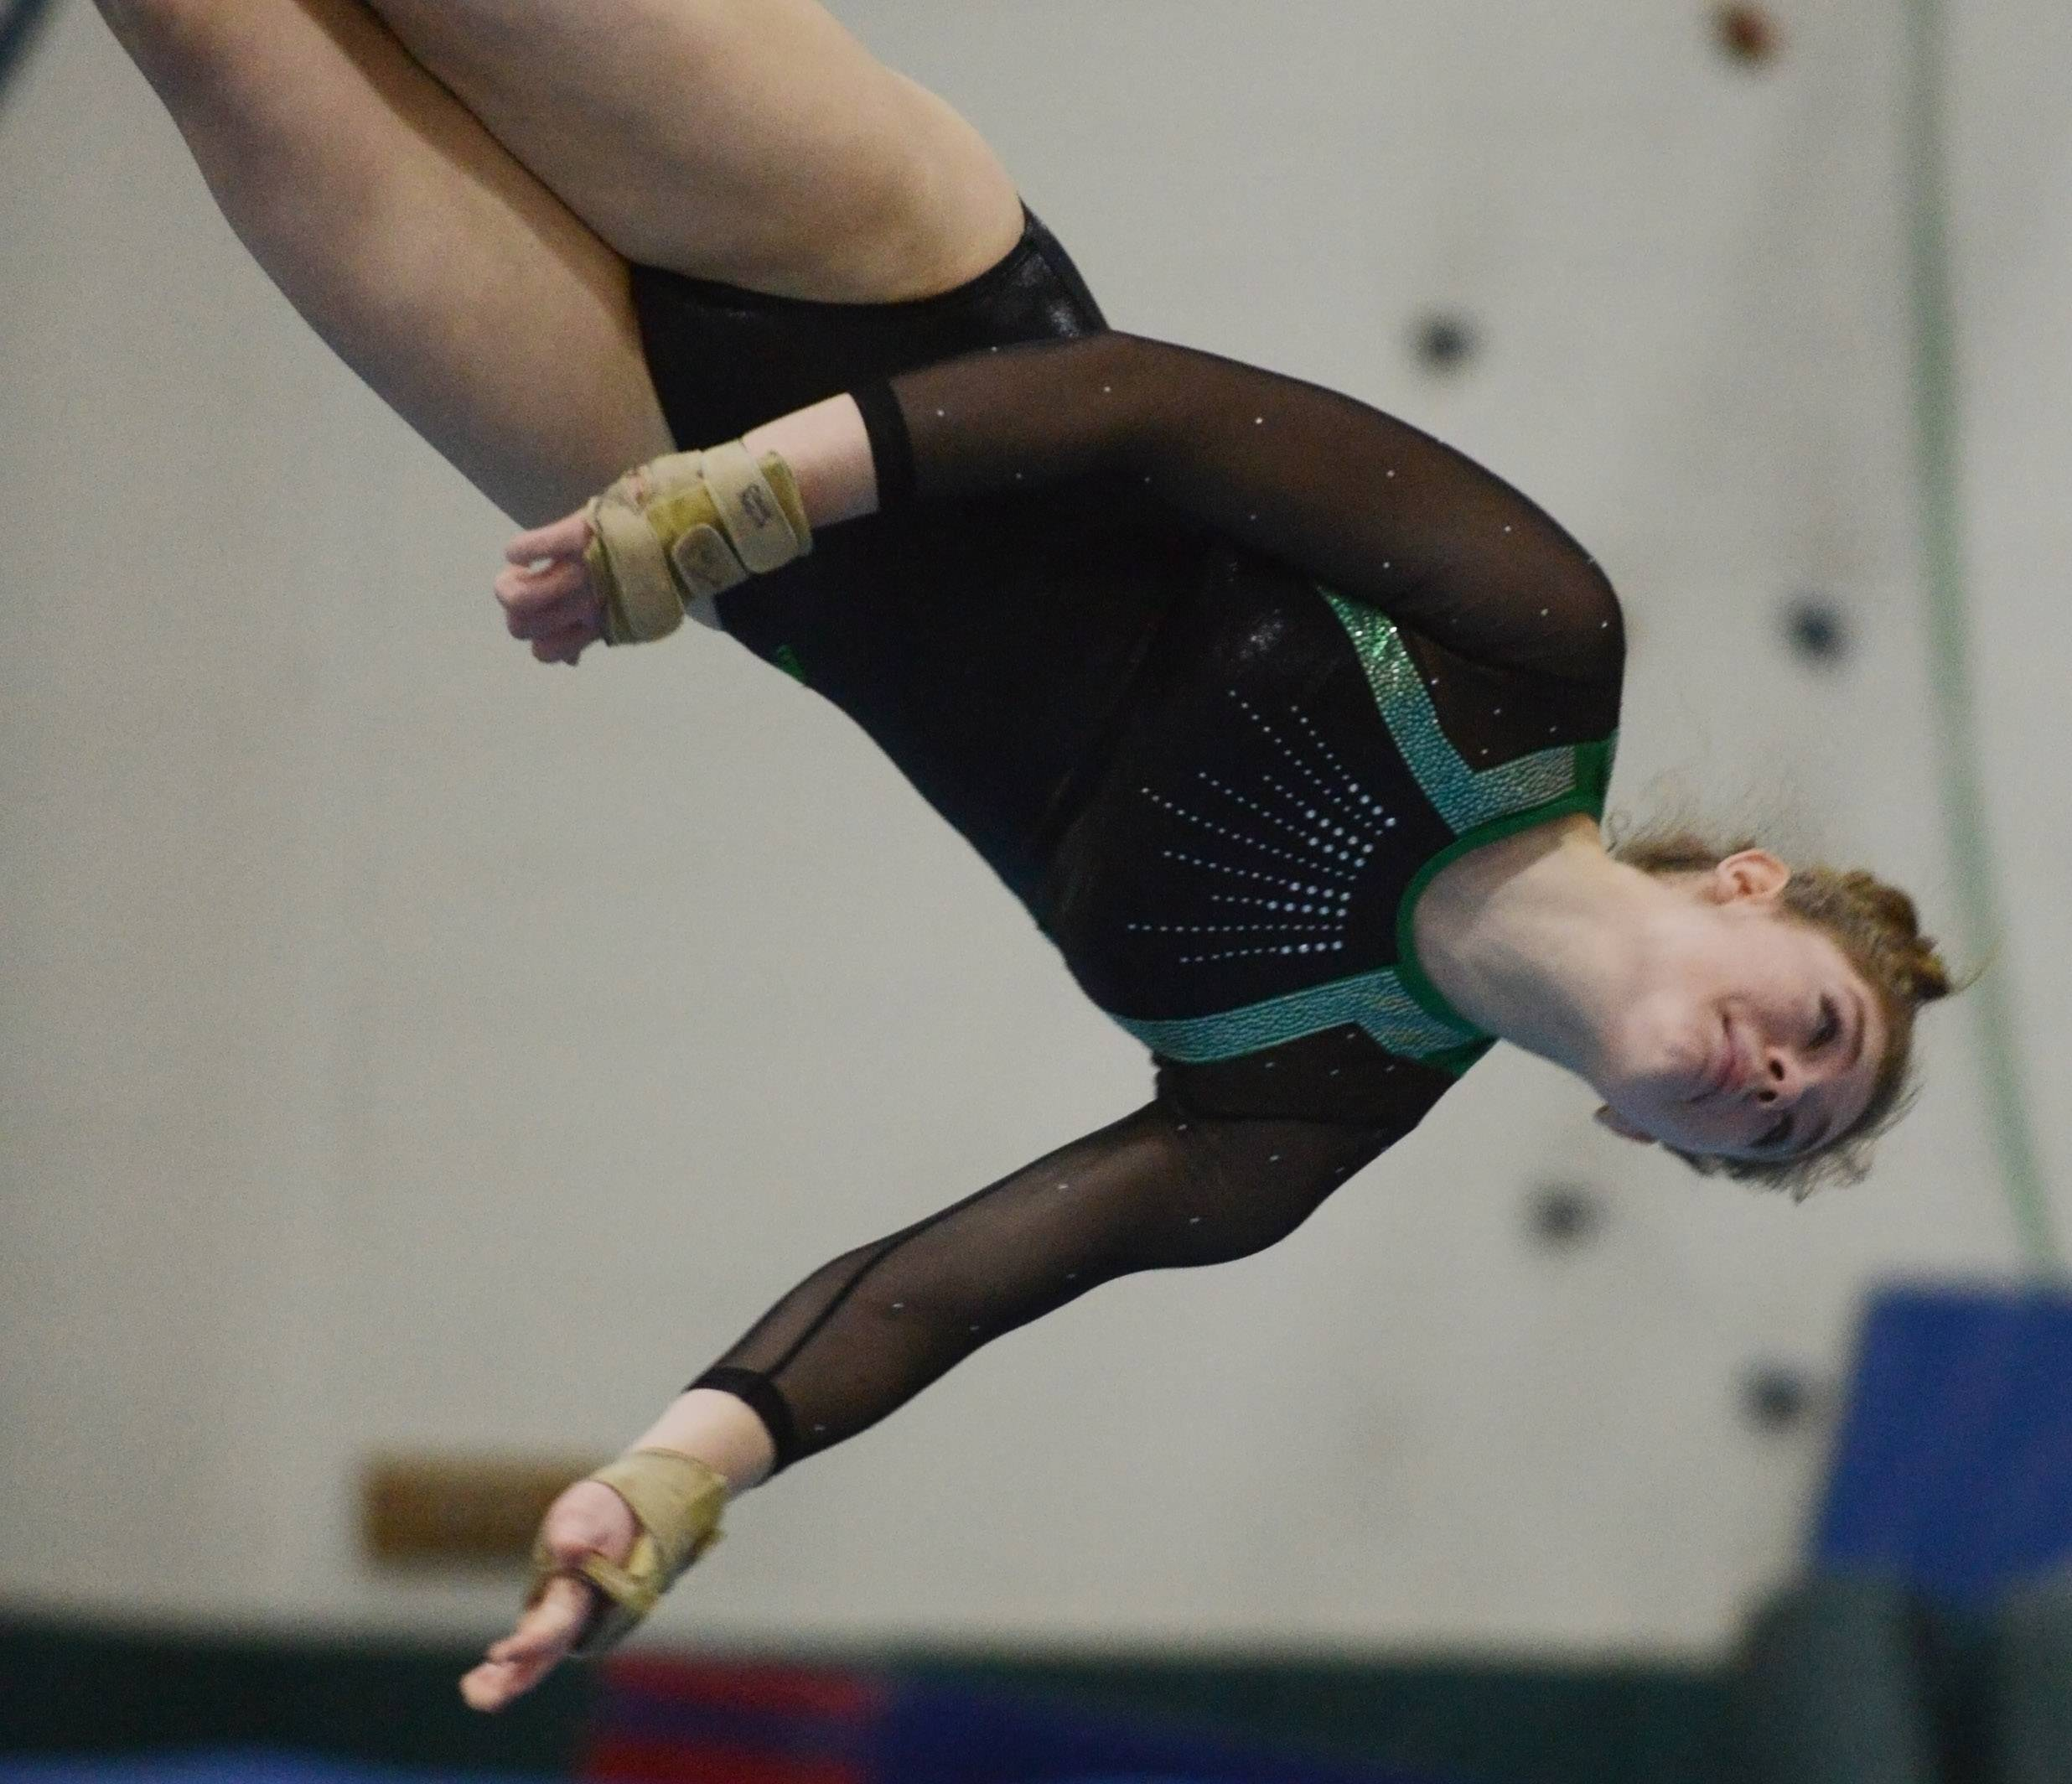 Glenbard West's Claire McGurk competes on the floor exercise during the Fremd girls gymnastics invitational in Palatine on Saturday.